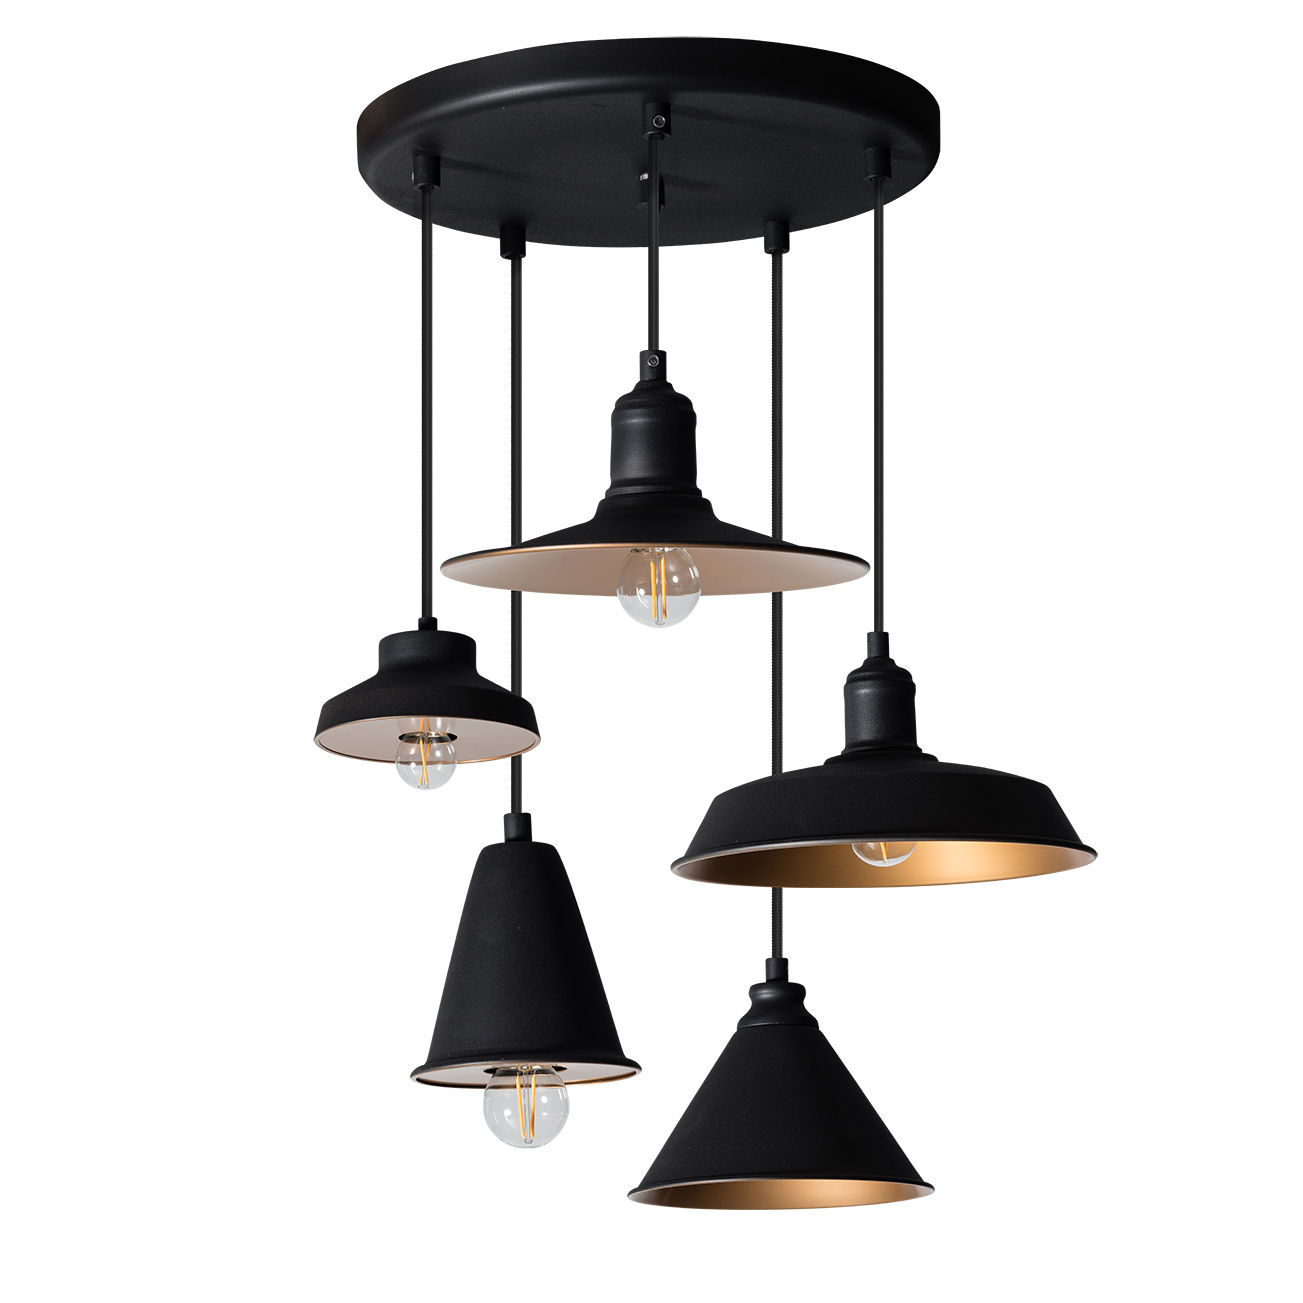 OUTLET - Midnight hanglamp ETH � 40cm